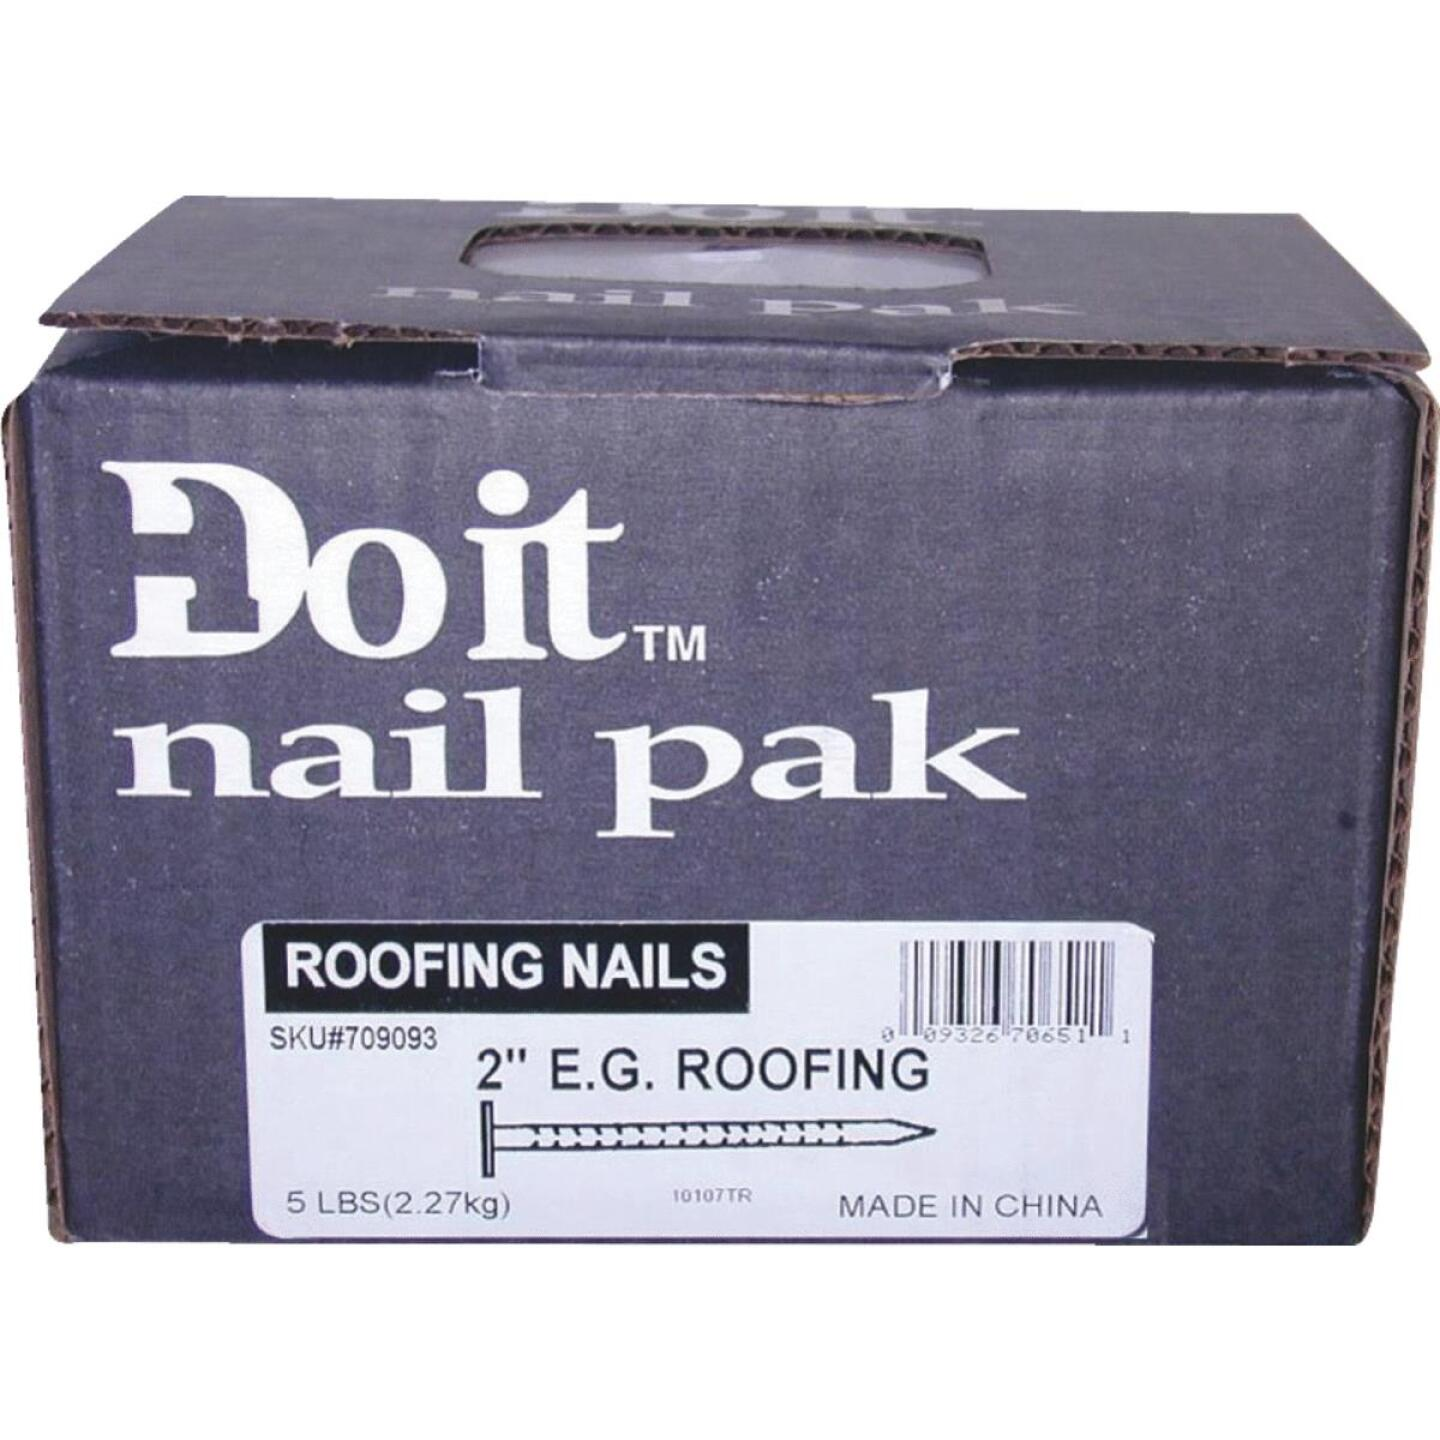 Do it 2 In. 11 ga Electrogalvanized Roofing Nails (720 Ct., 5 Lb.) Image 2